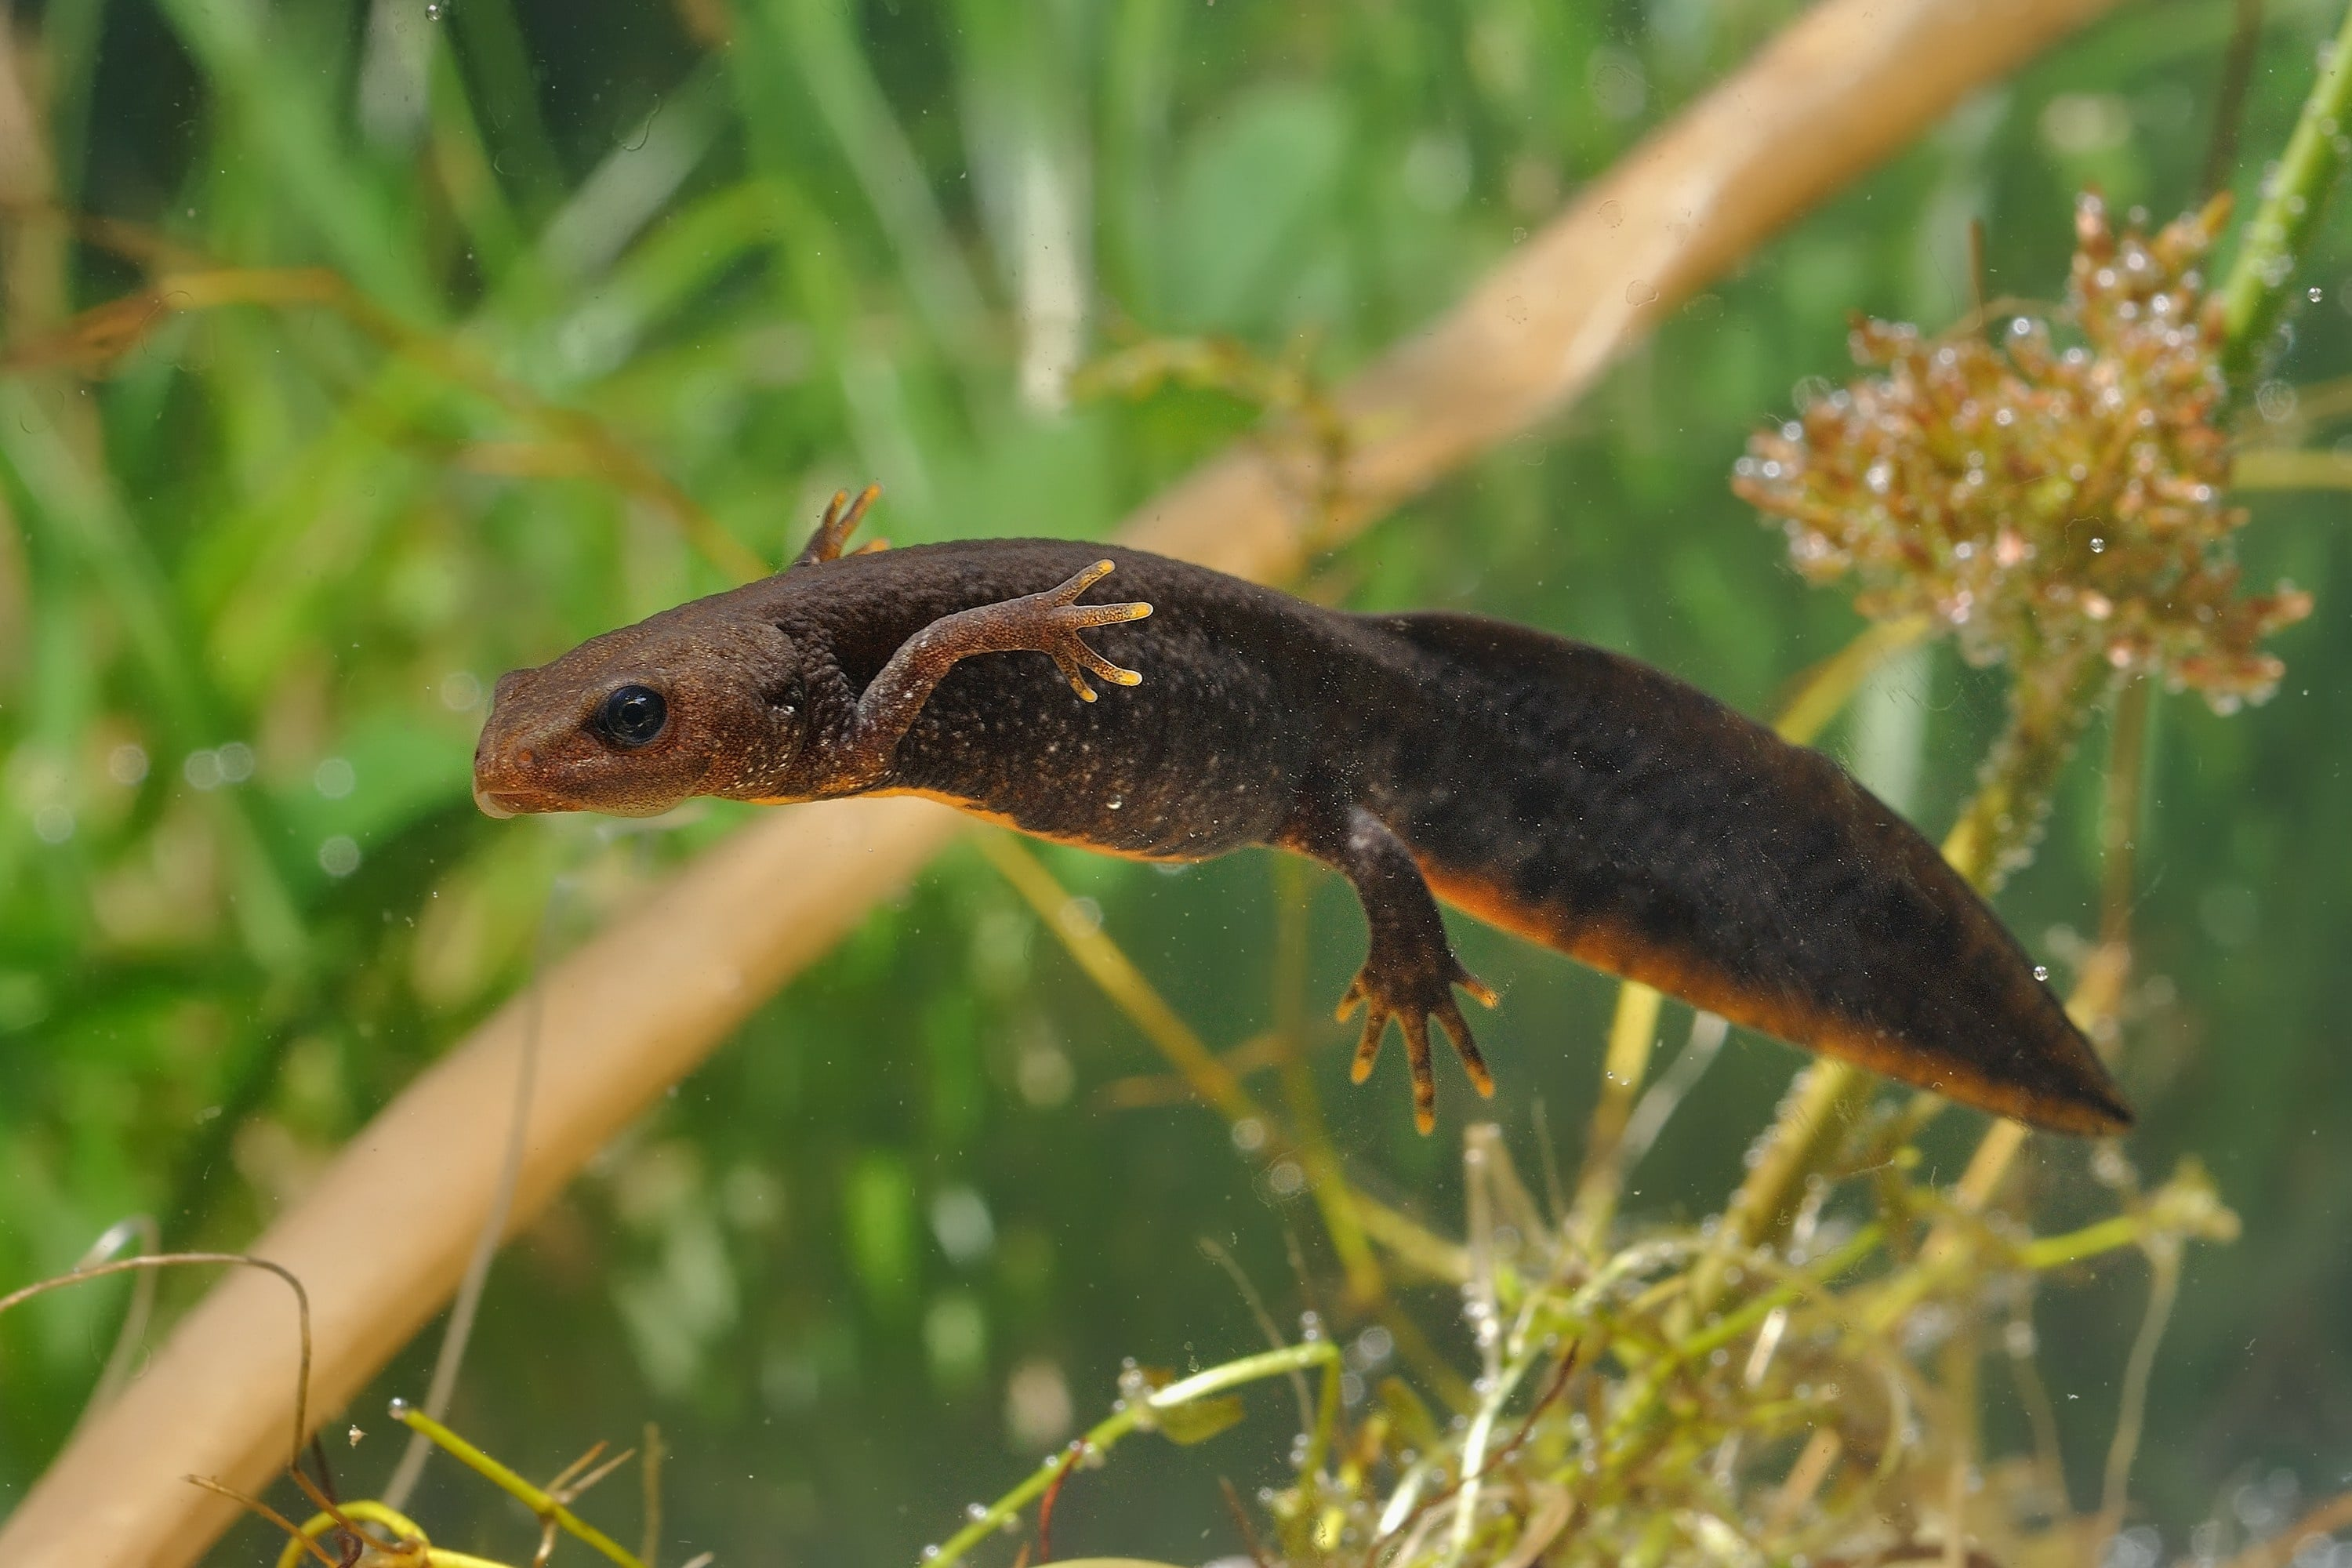 Great Crested Newt (Triturus cristatus) swimming in the water. Green background with water plants.